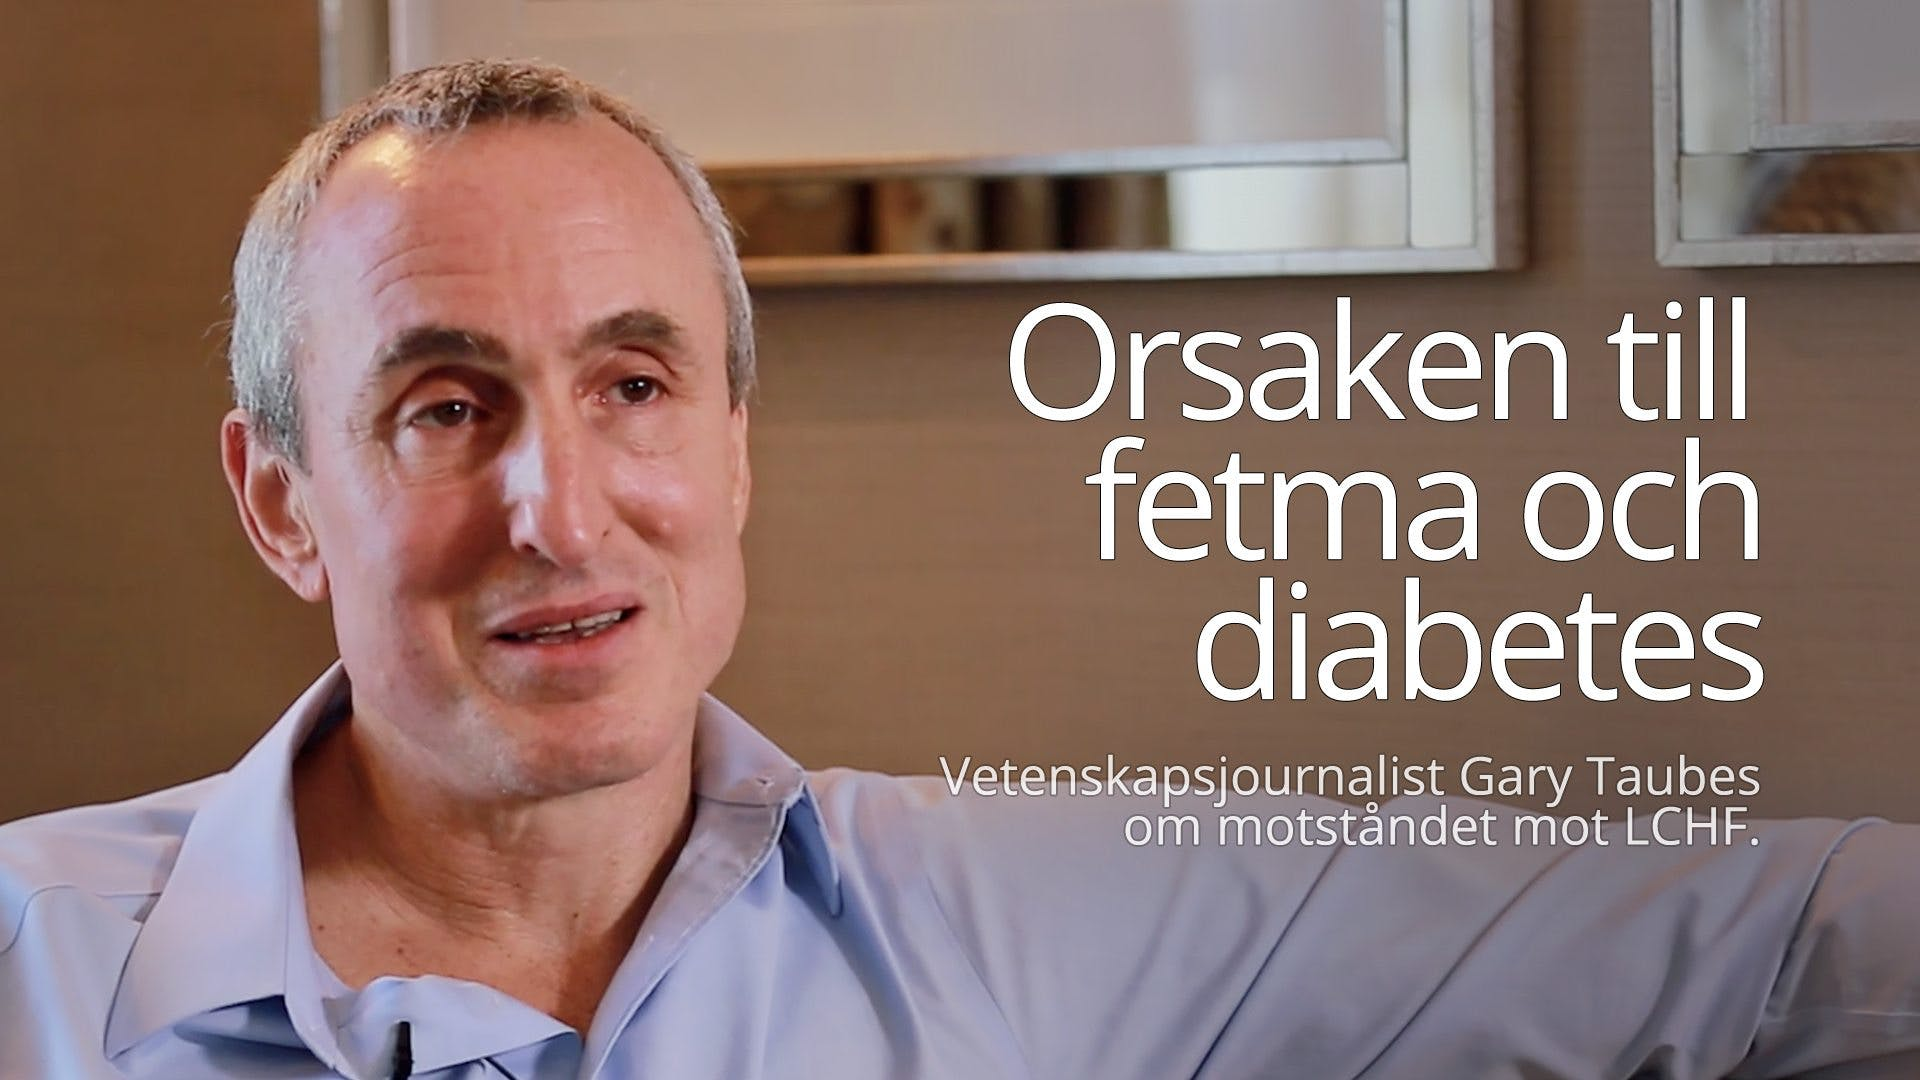 Gary Taubes interview (SA 2015)